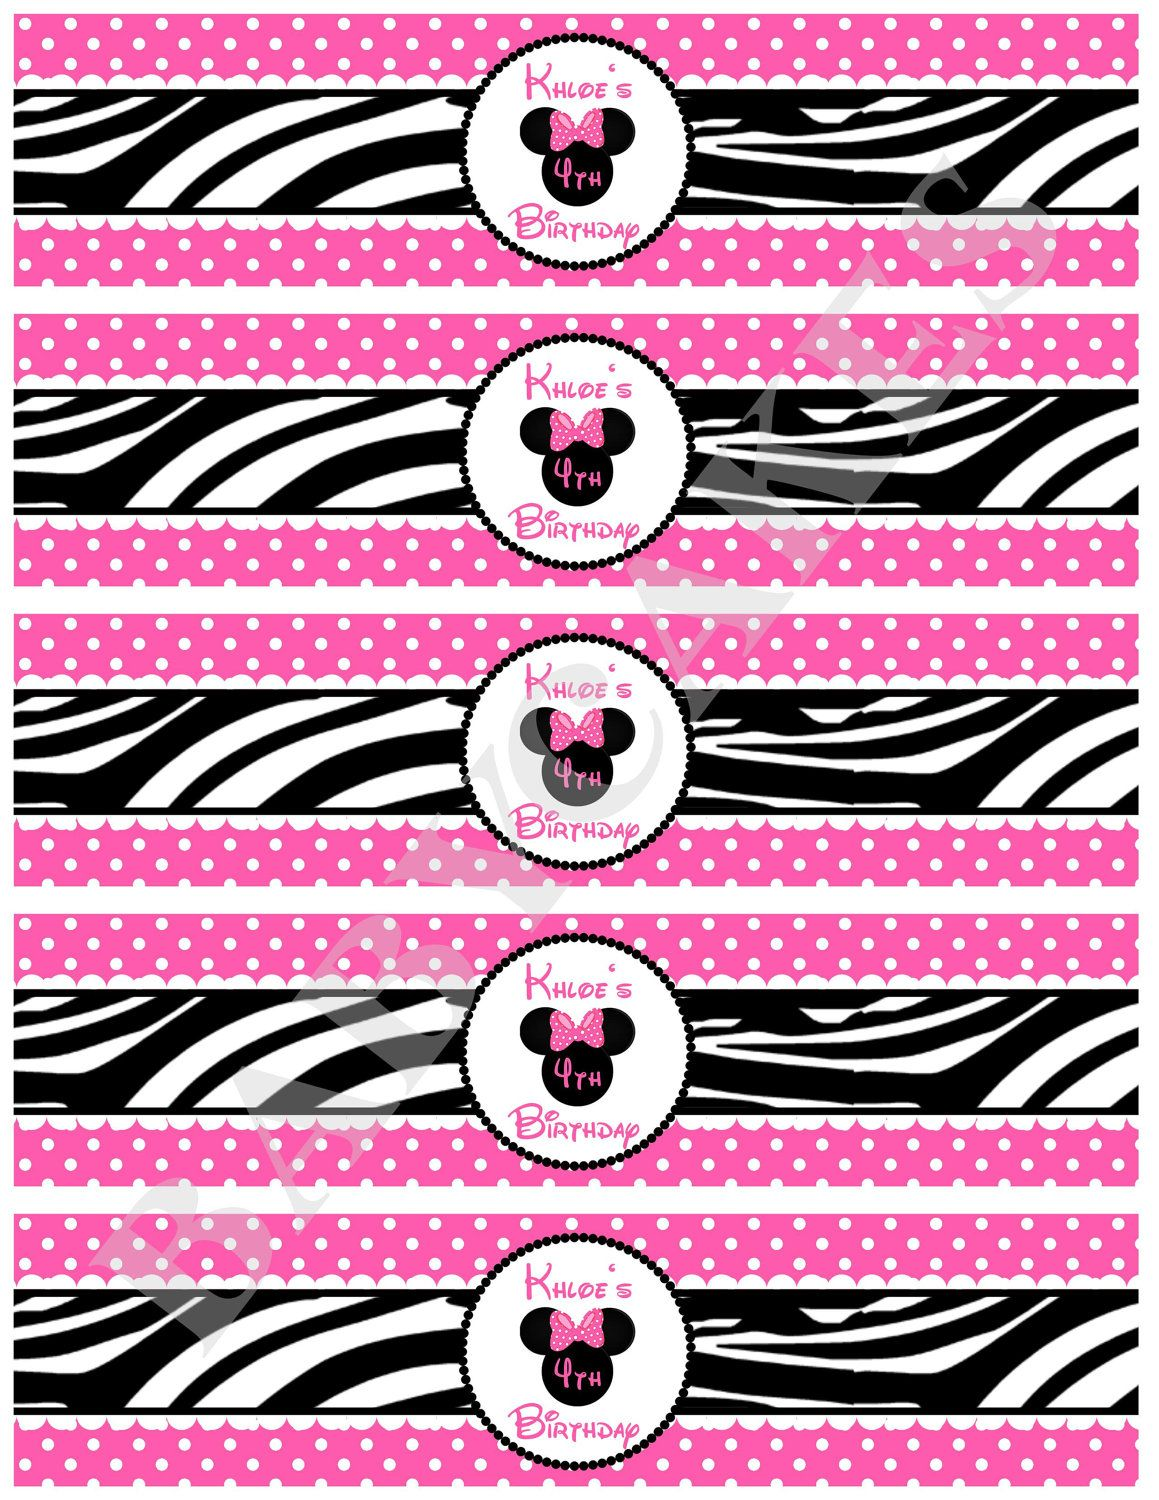 Minnie Mouse Water Bottle Labels Wraps Zebra Print - DIY Print Your